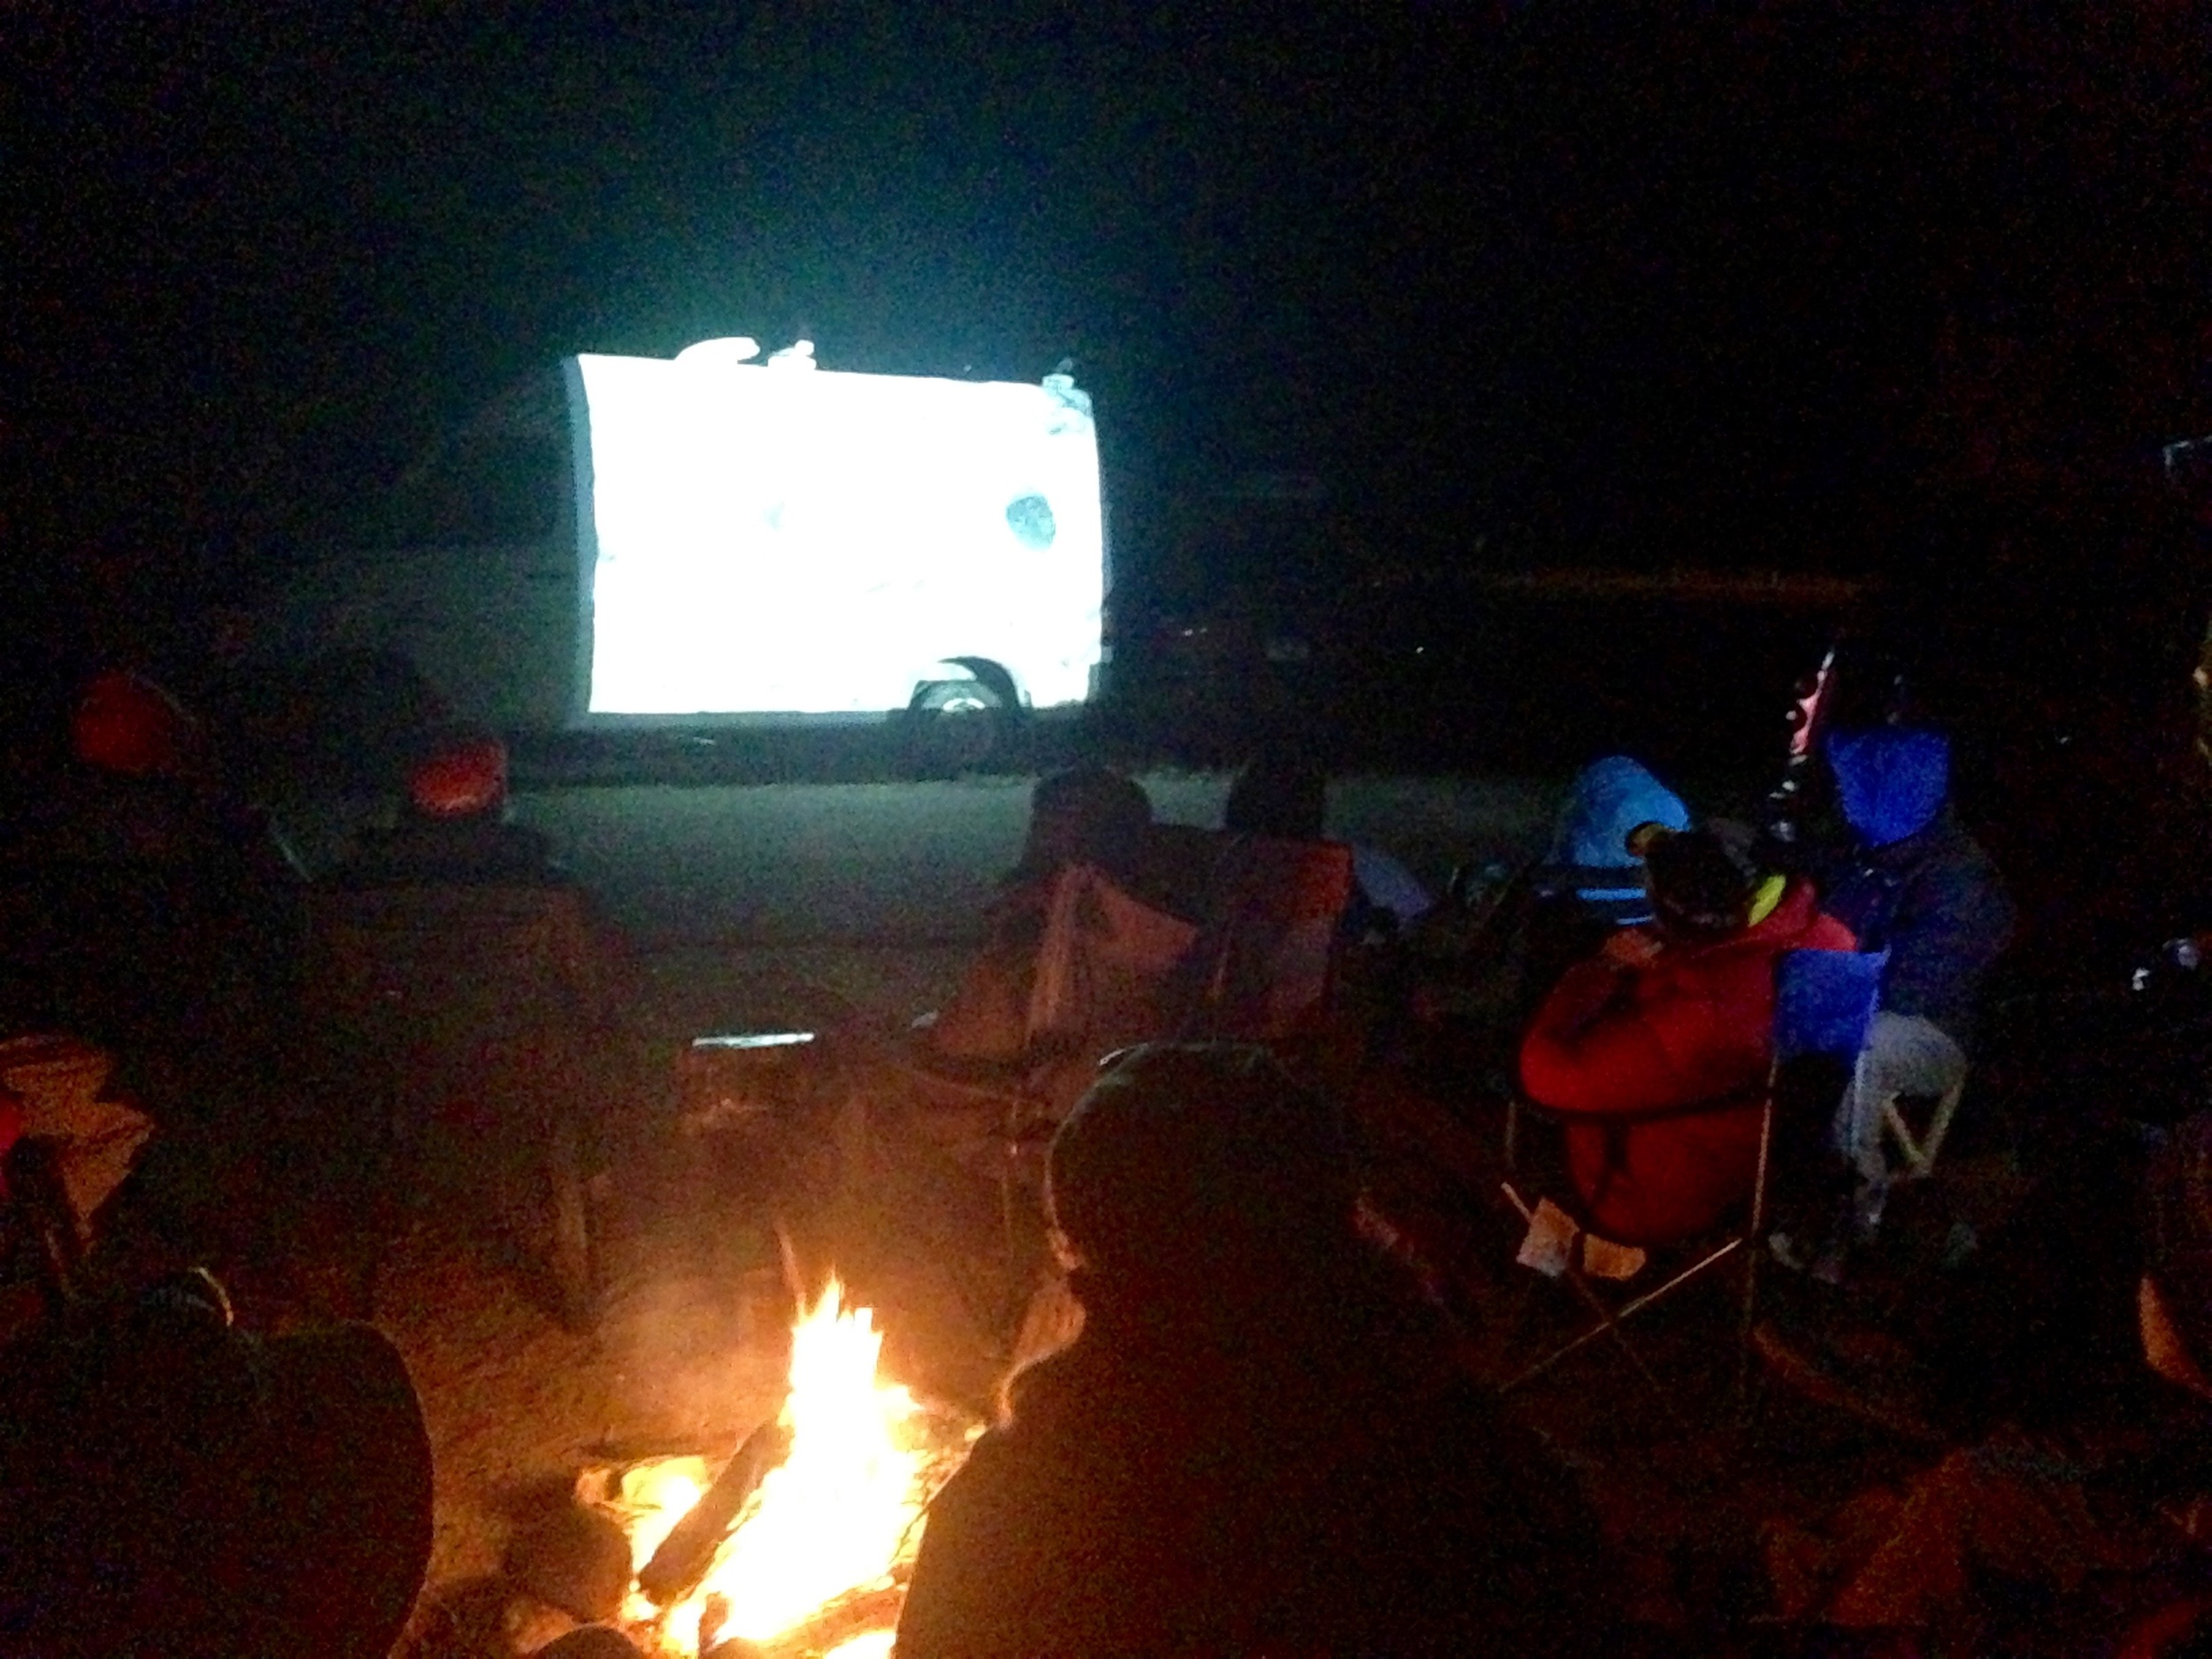 Watching Reel Rock projected on the side of a van!